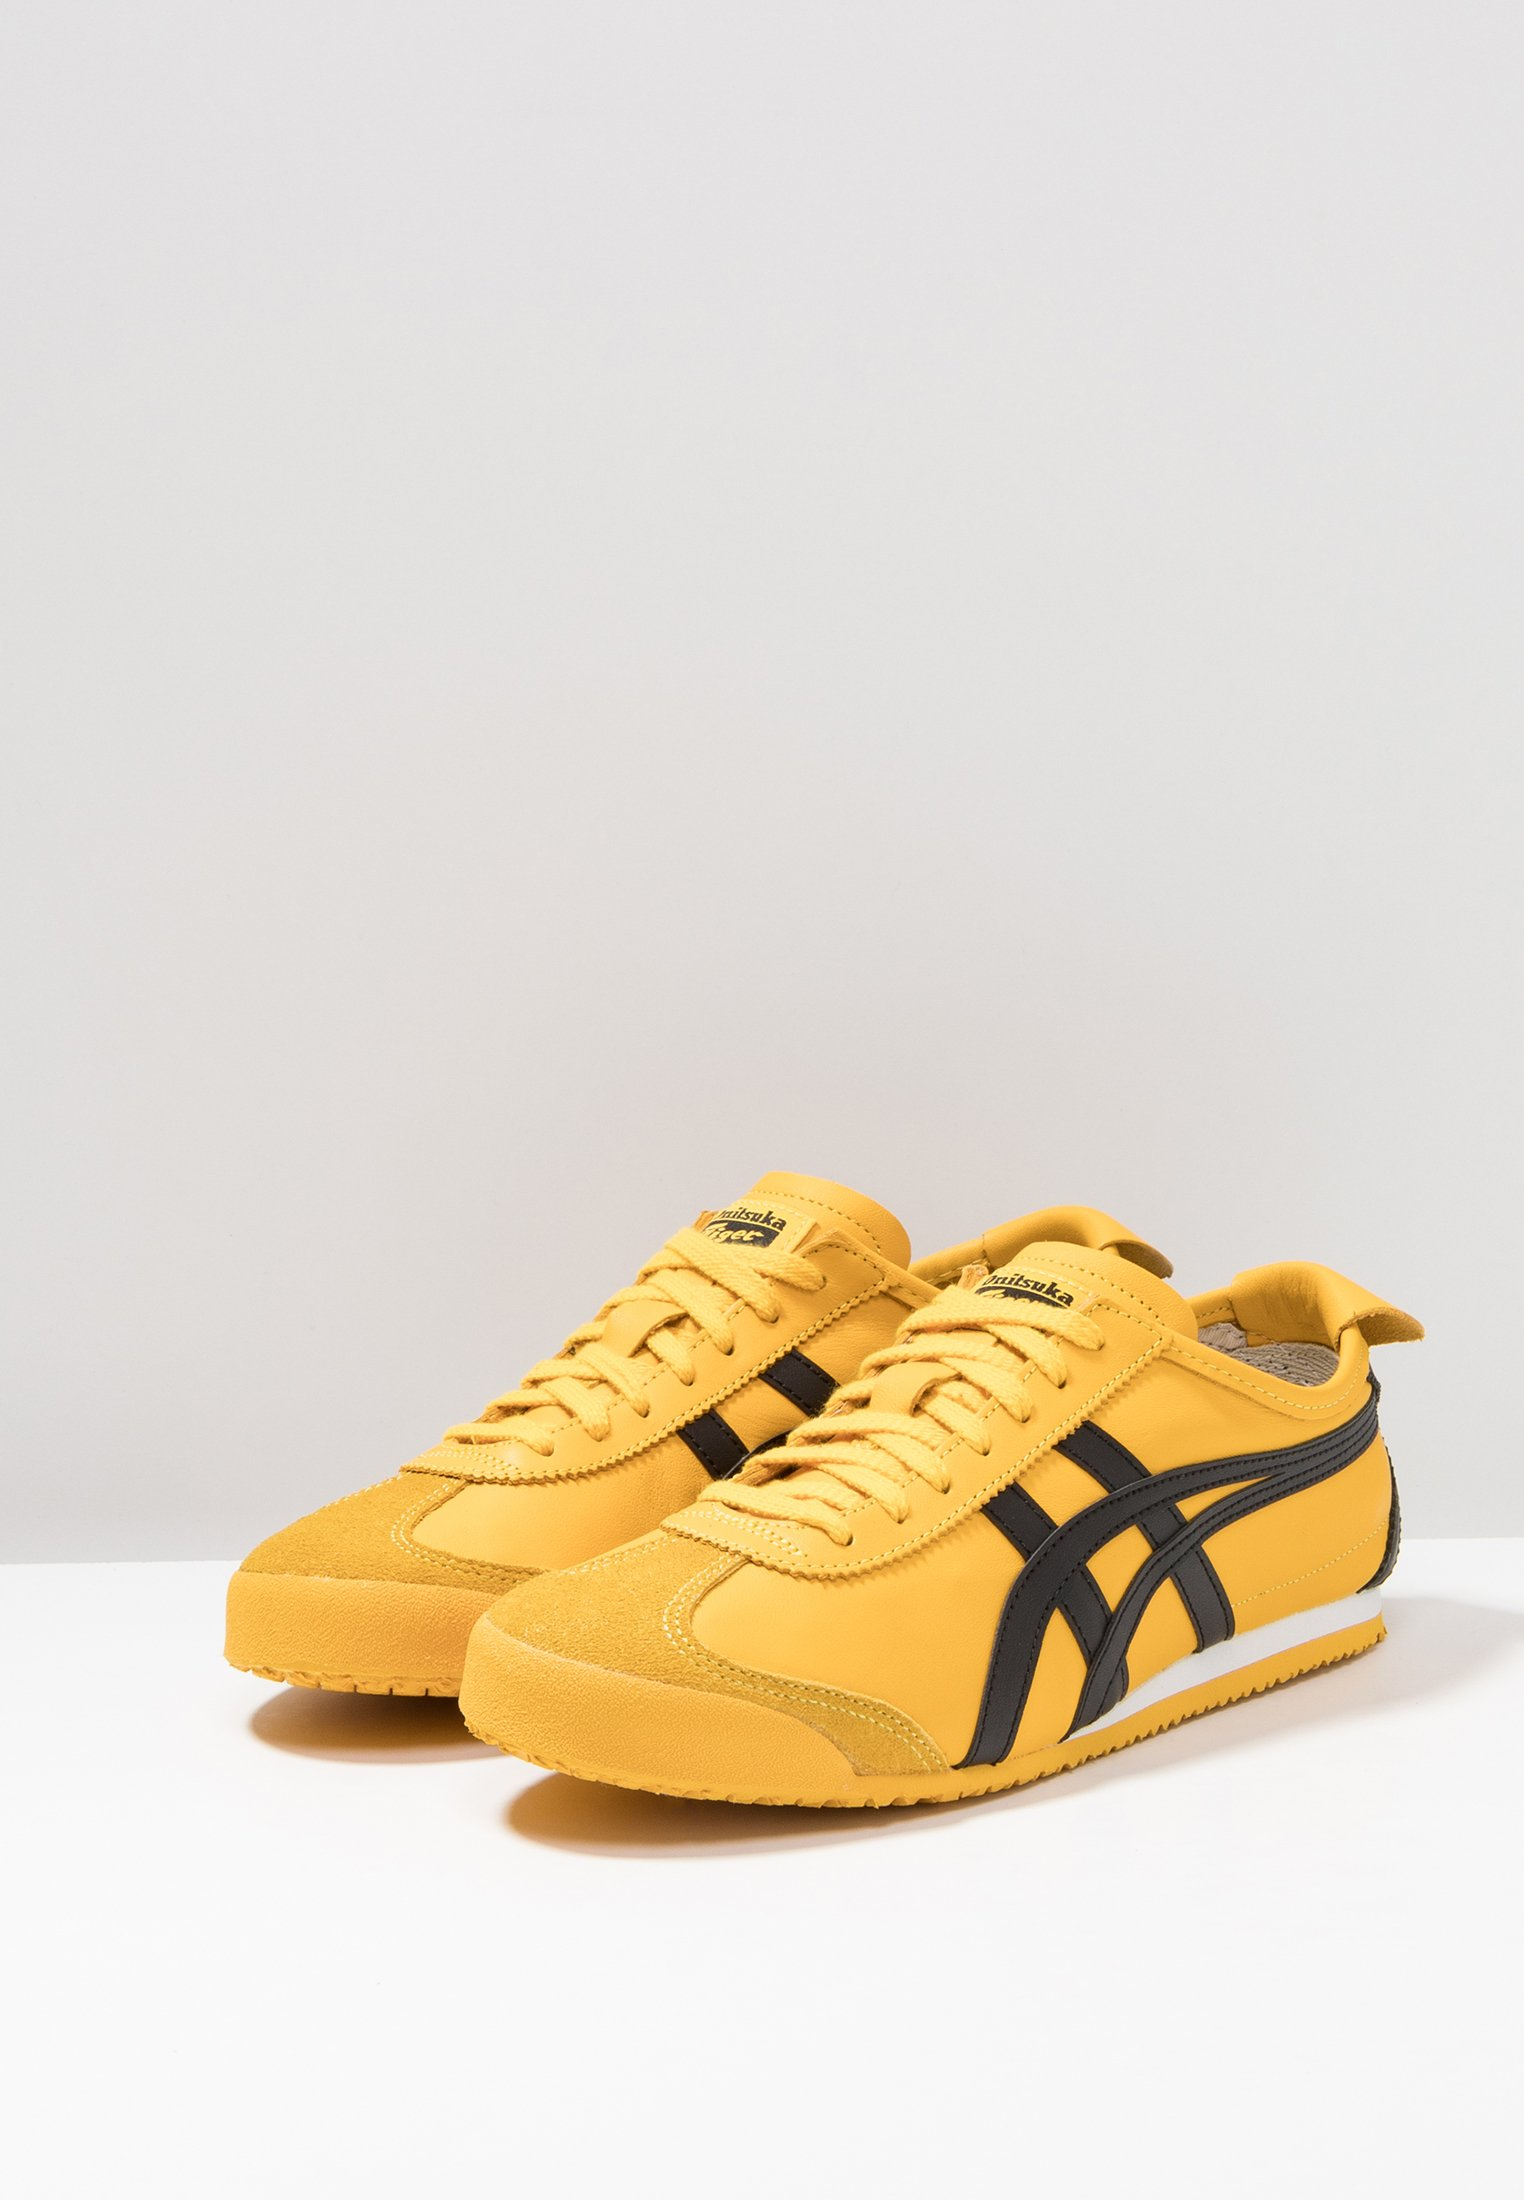 Onitsuka Tiger MEXICO 66 - Sneaker low - yellow/black/gelb - Herrenschuhe fWRSY